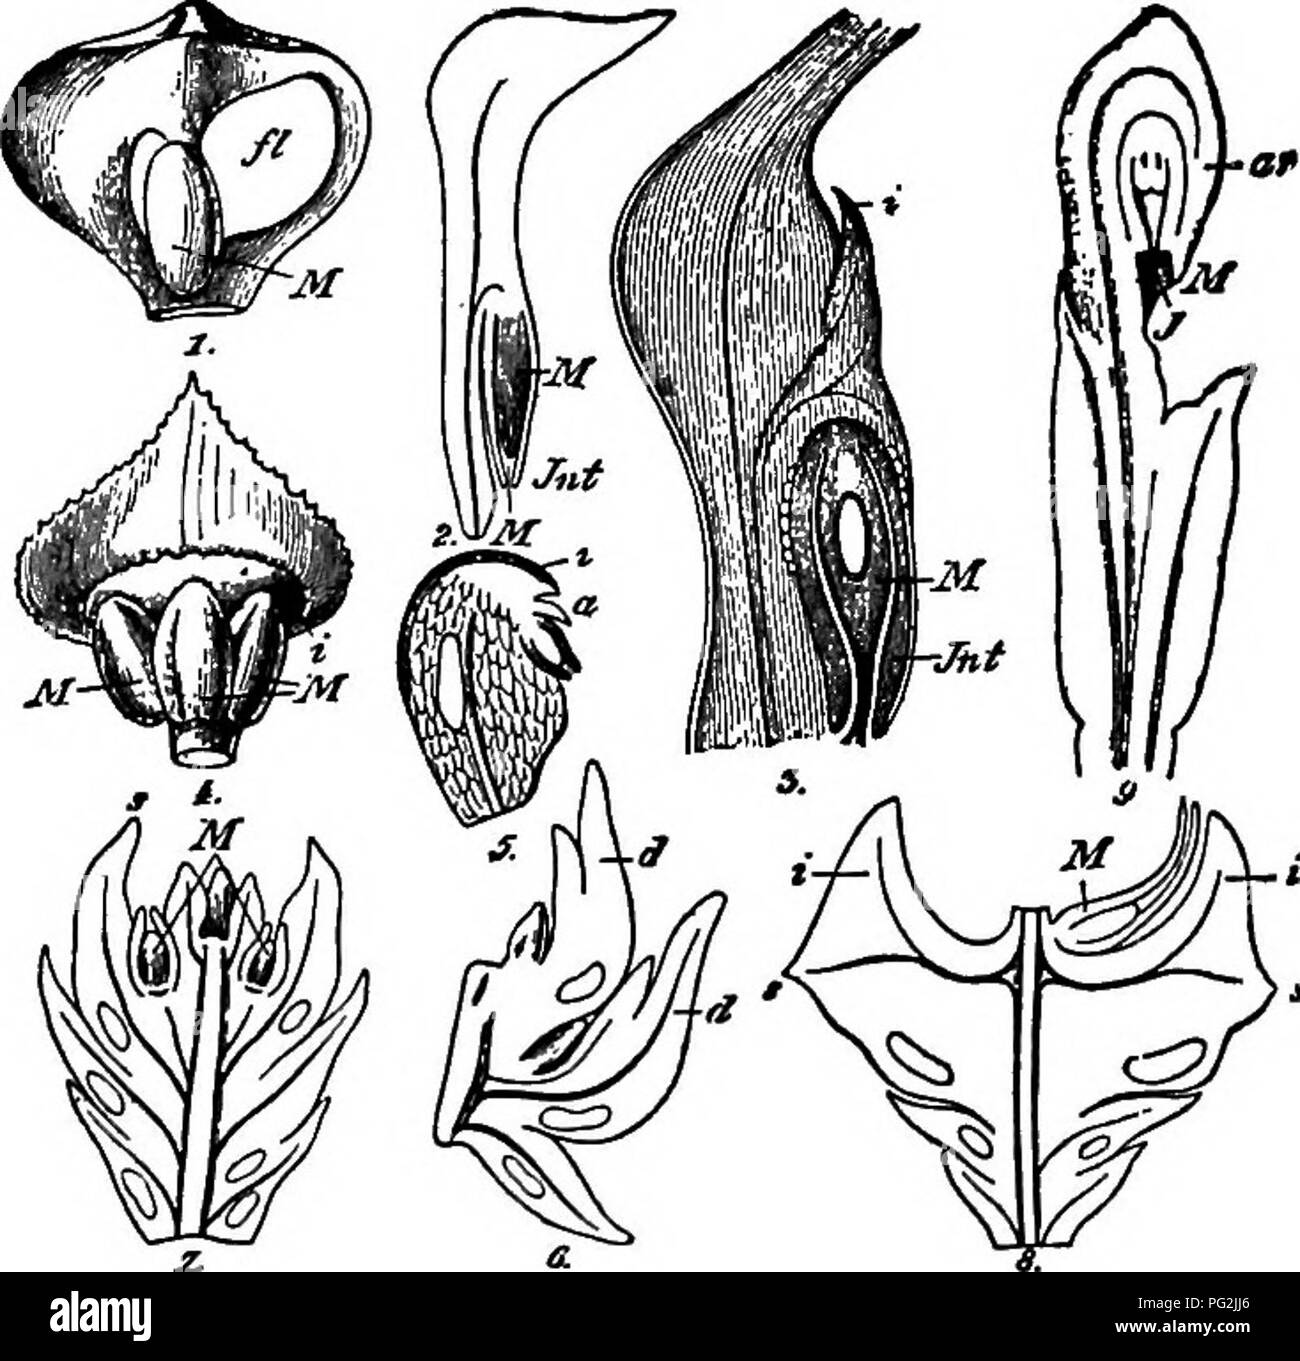 . Morphology of gymnosperms. Gymnosperms; Plant morphology. 324 MORPHOLOGY OF GYMNOSPEBUVLS In a study of the ovuliferous bracts of Saxegothaea and Micro- cachrys, Thomson (164) has discovered an inverse orientation of the vascular bundle supplying the ovule, a feature which has been used to prove the double nature of the ovuliferous structure in Pina- ceae. The same in- version, however, occurs in the supply bundle for the microsporan- gium, which is evidently borne upon a simple sporophyll. Among the Abietineae, Taxodineae, and Cupressineae, how- ever, there is a double inversion in the ovul - Stock Image